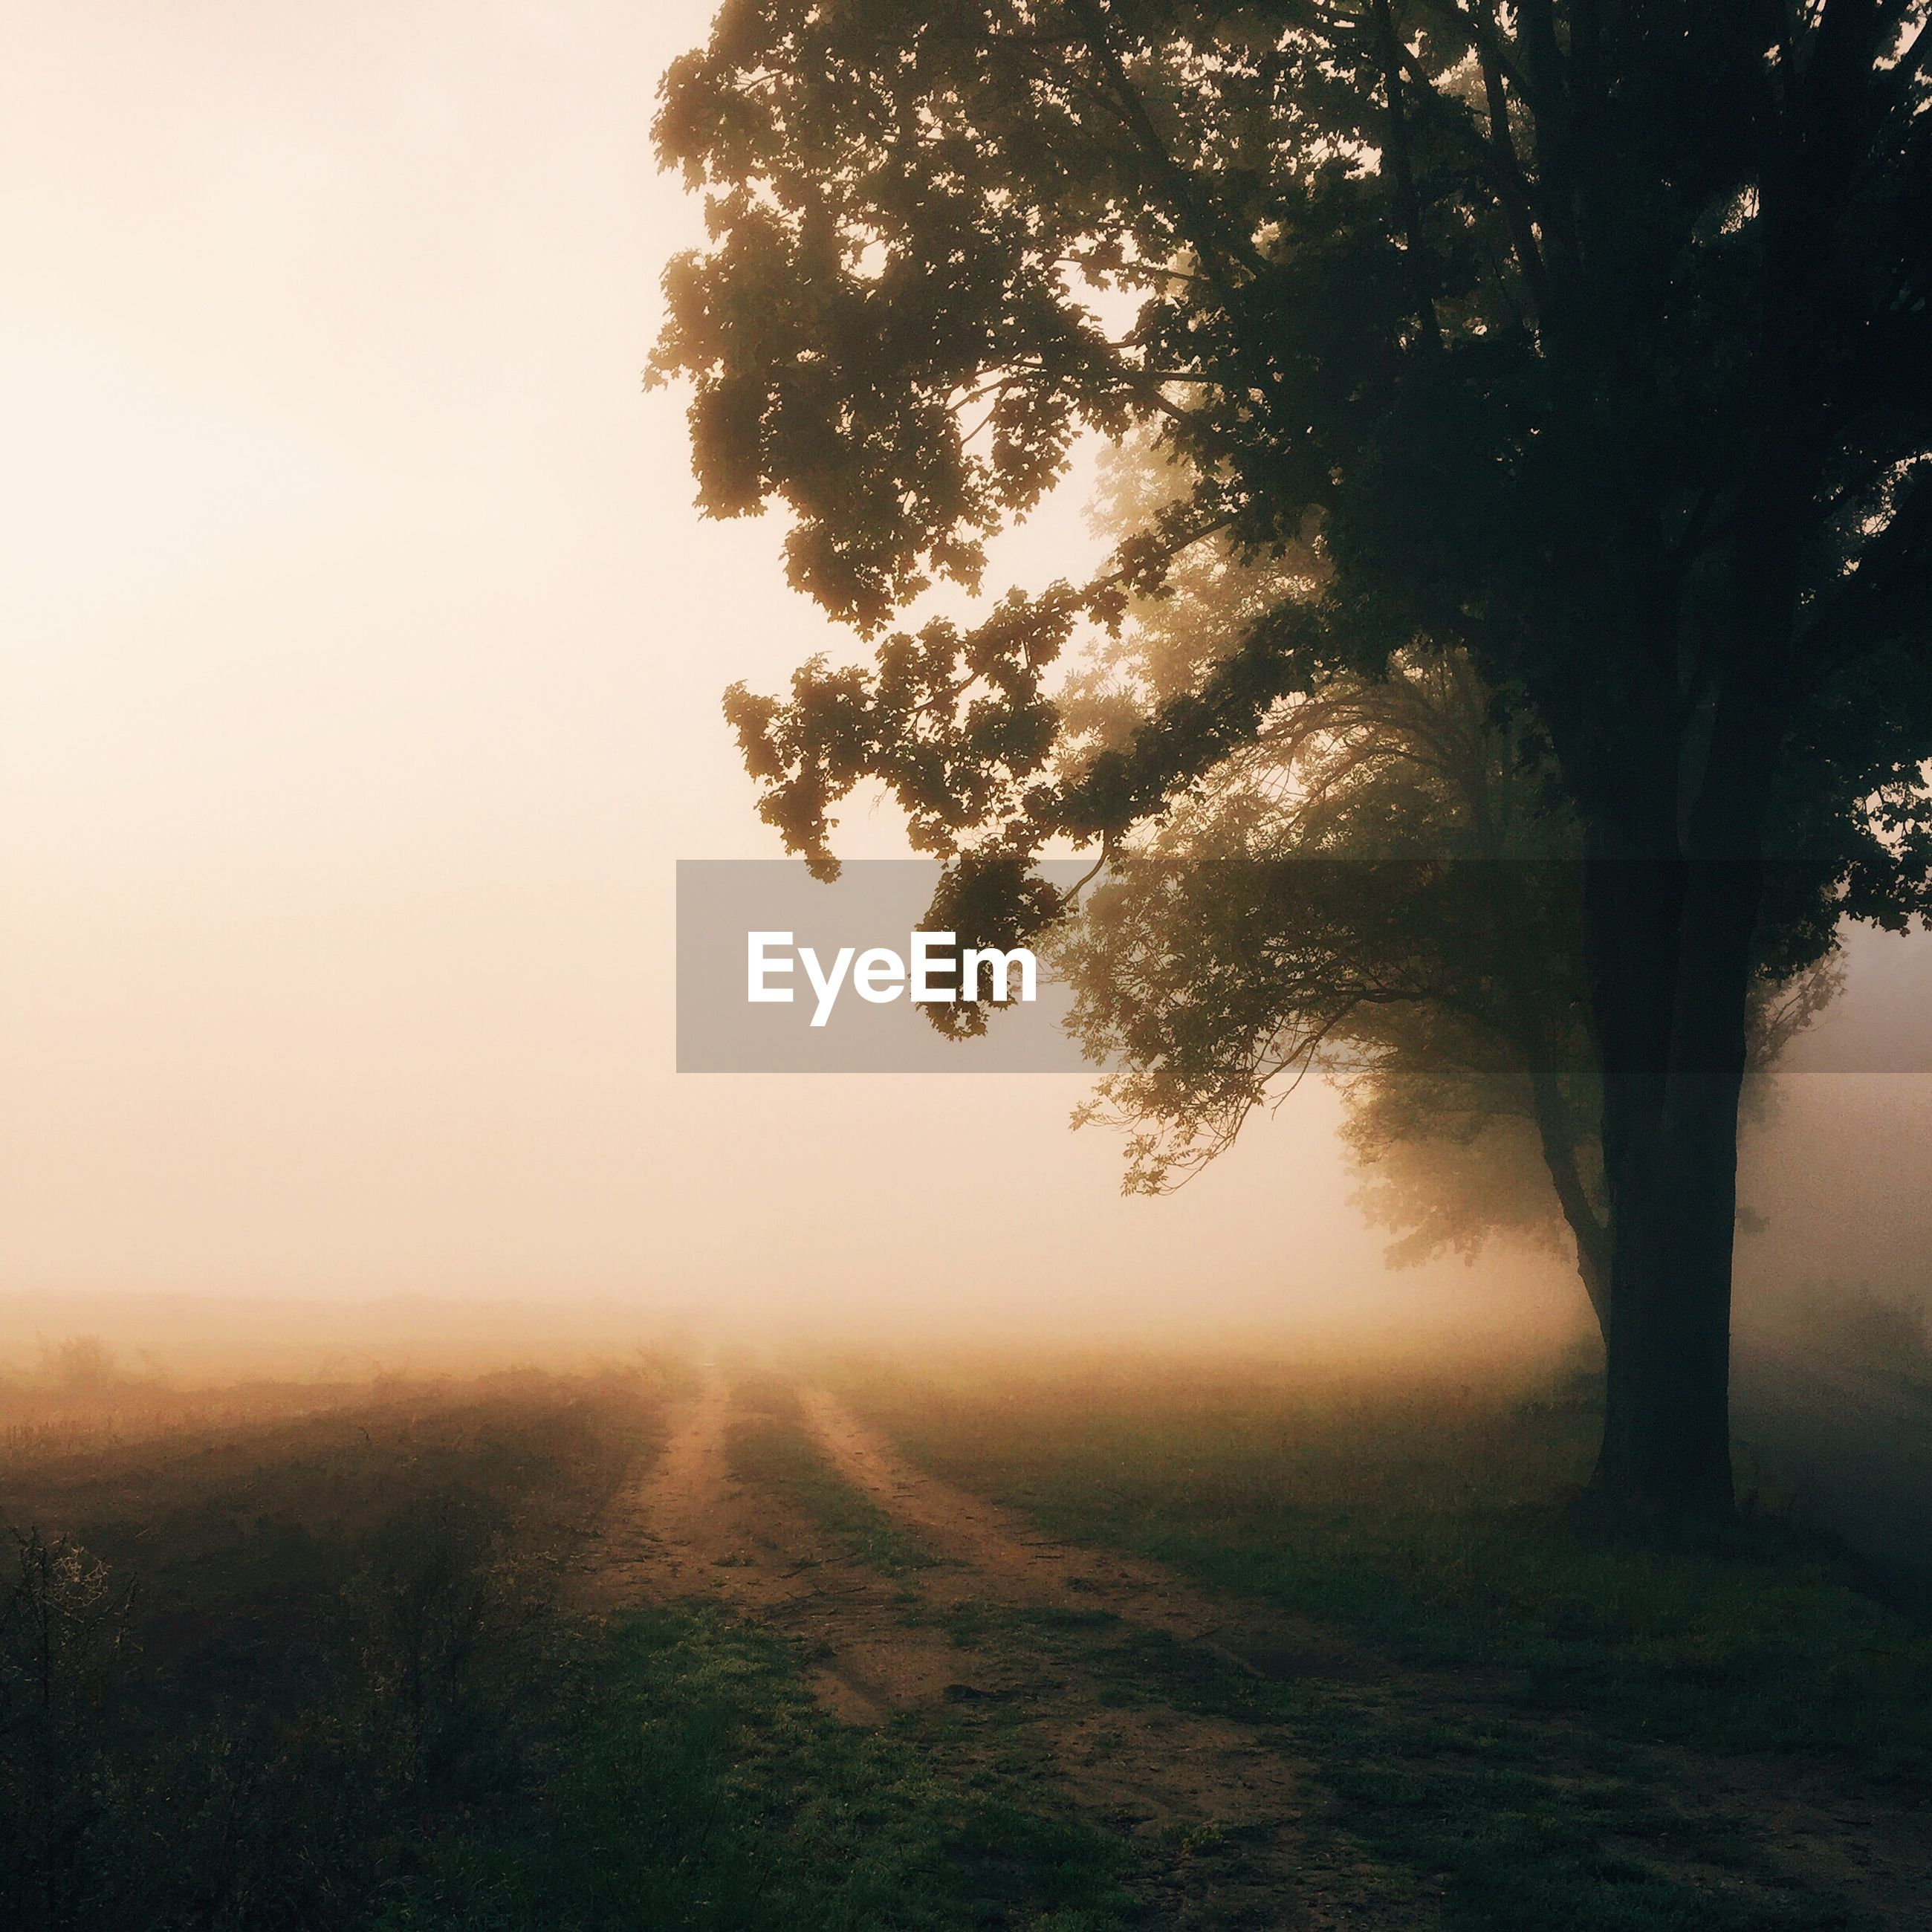 Tree on field during foggy weather at dusk